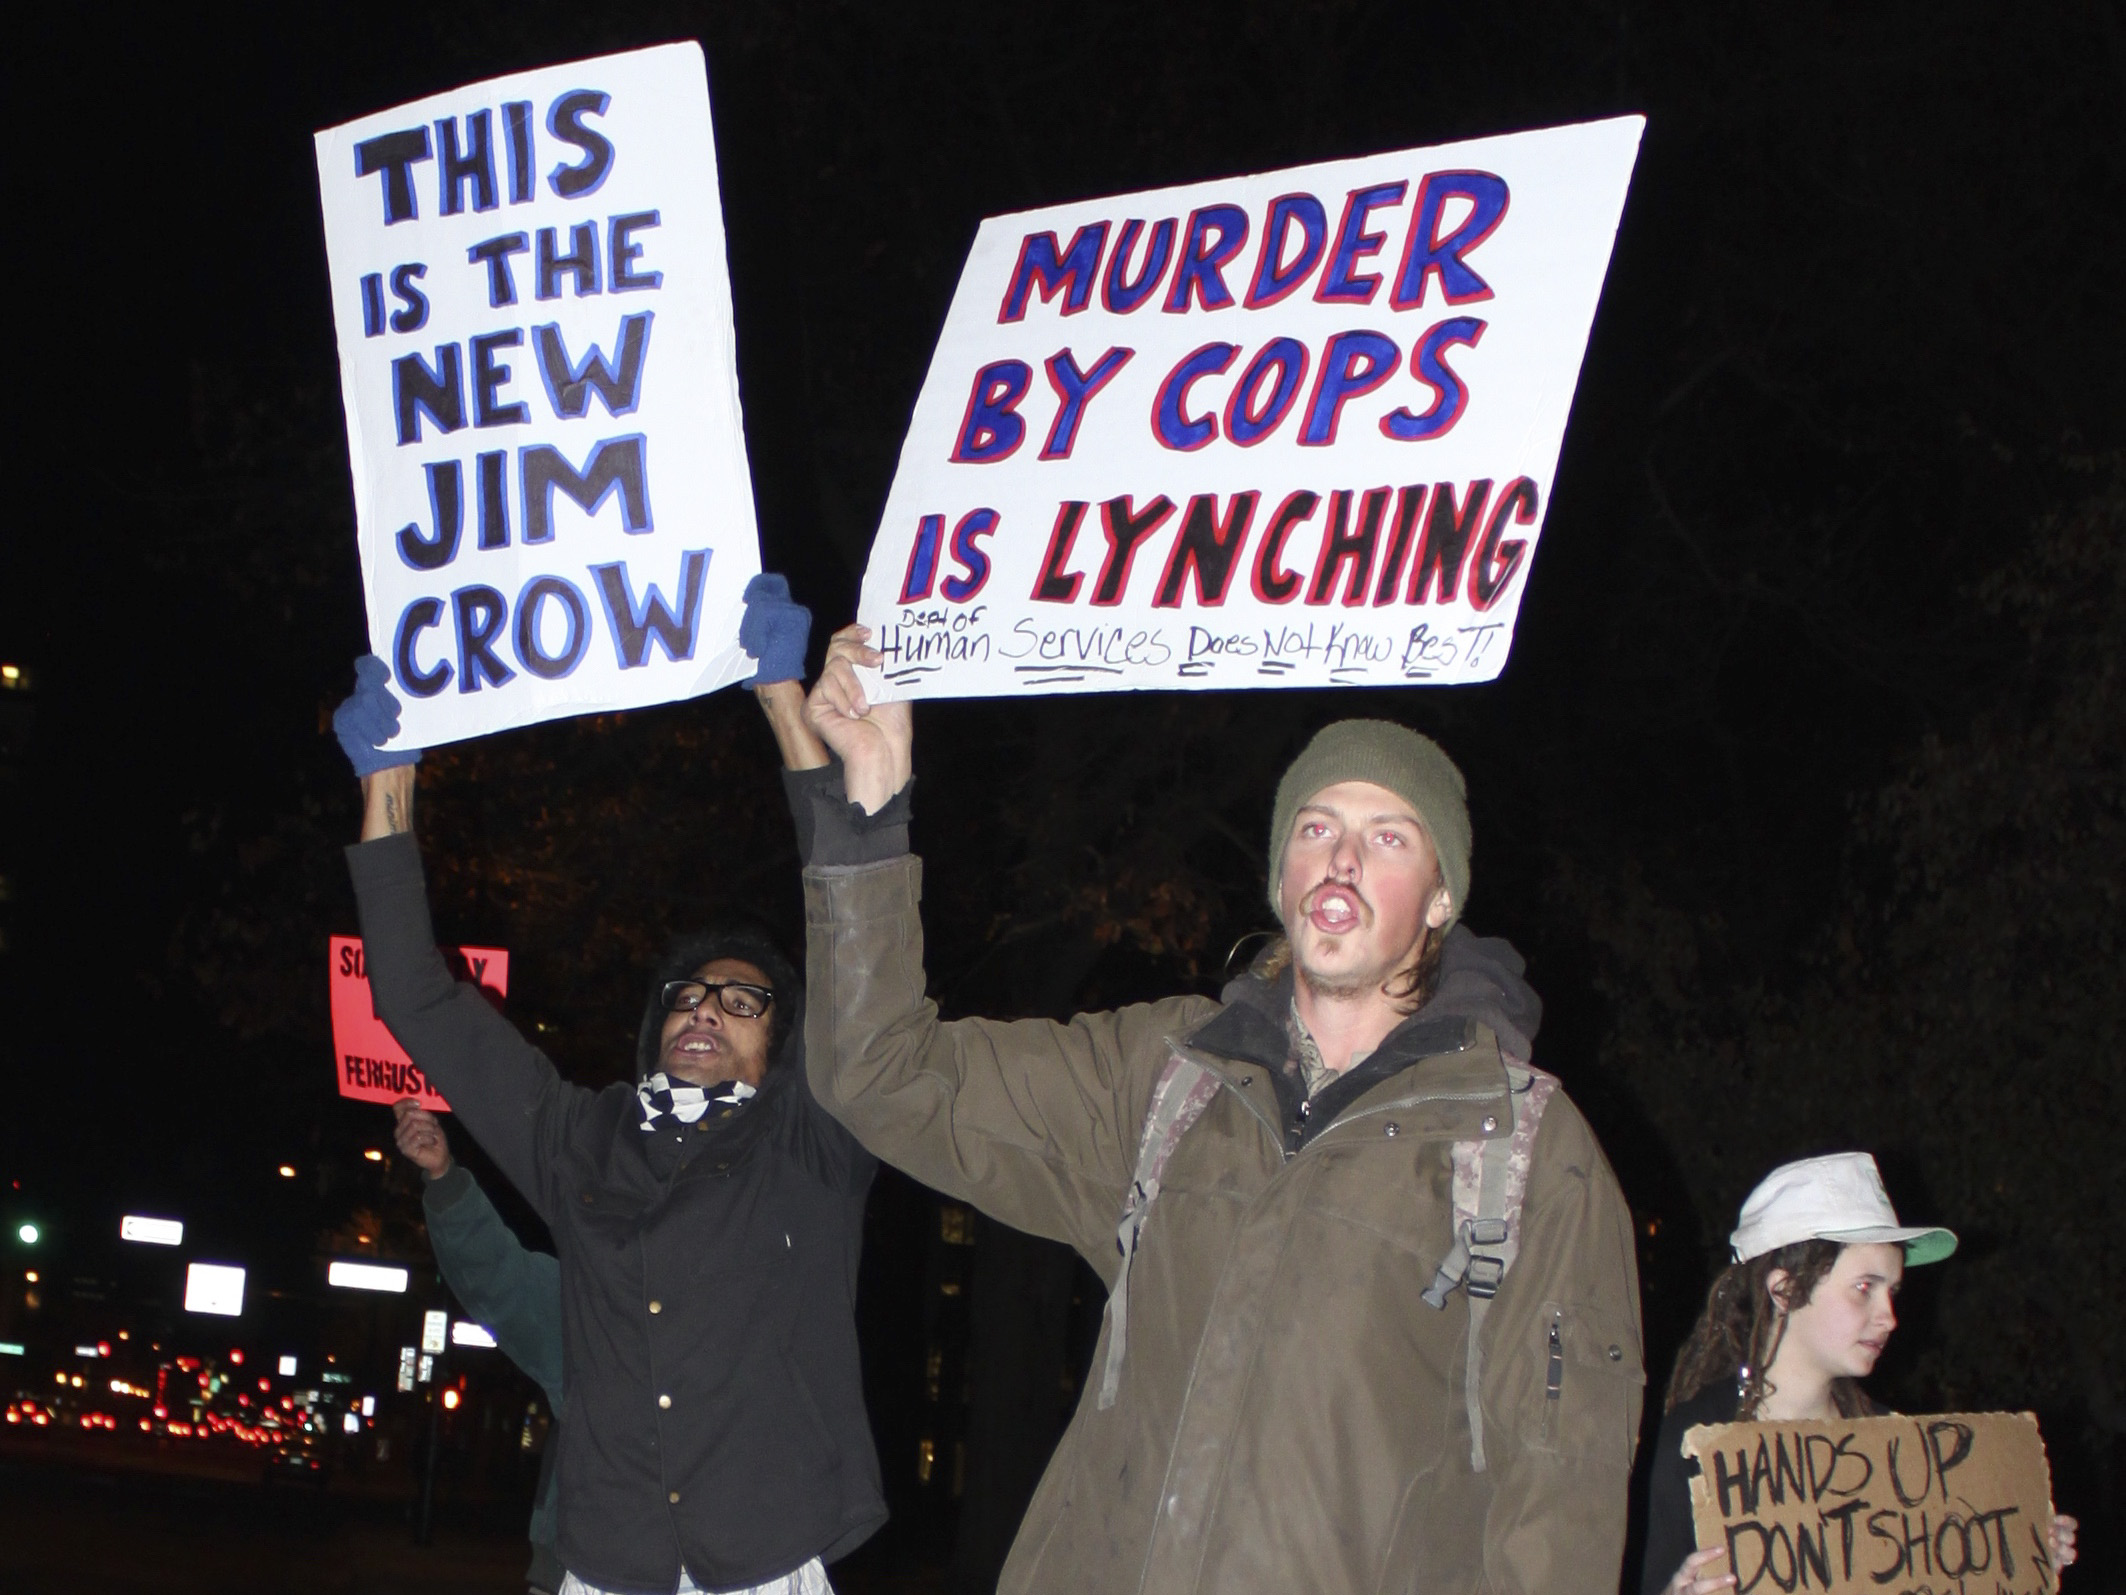 <p>About 100 people in Denver protested on Monday, Nov. 24, 2014, a Missouri grand jury's decision not to indict a white police officer who killed an unarmed black teen.</p>